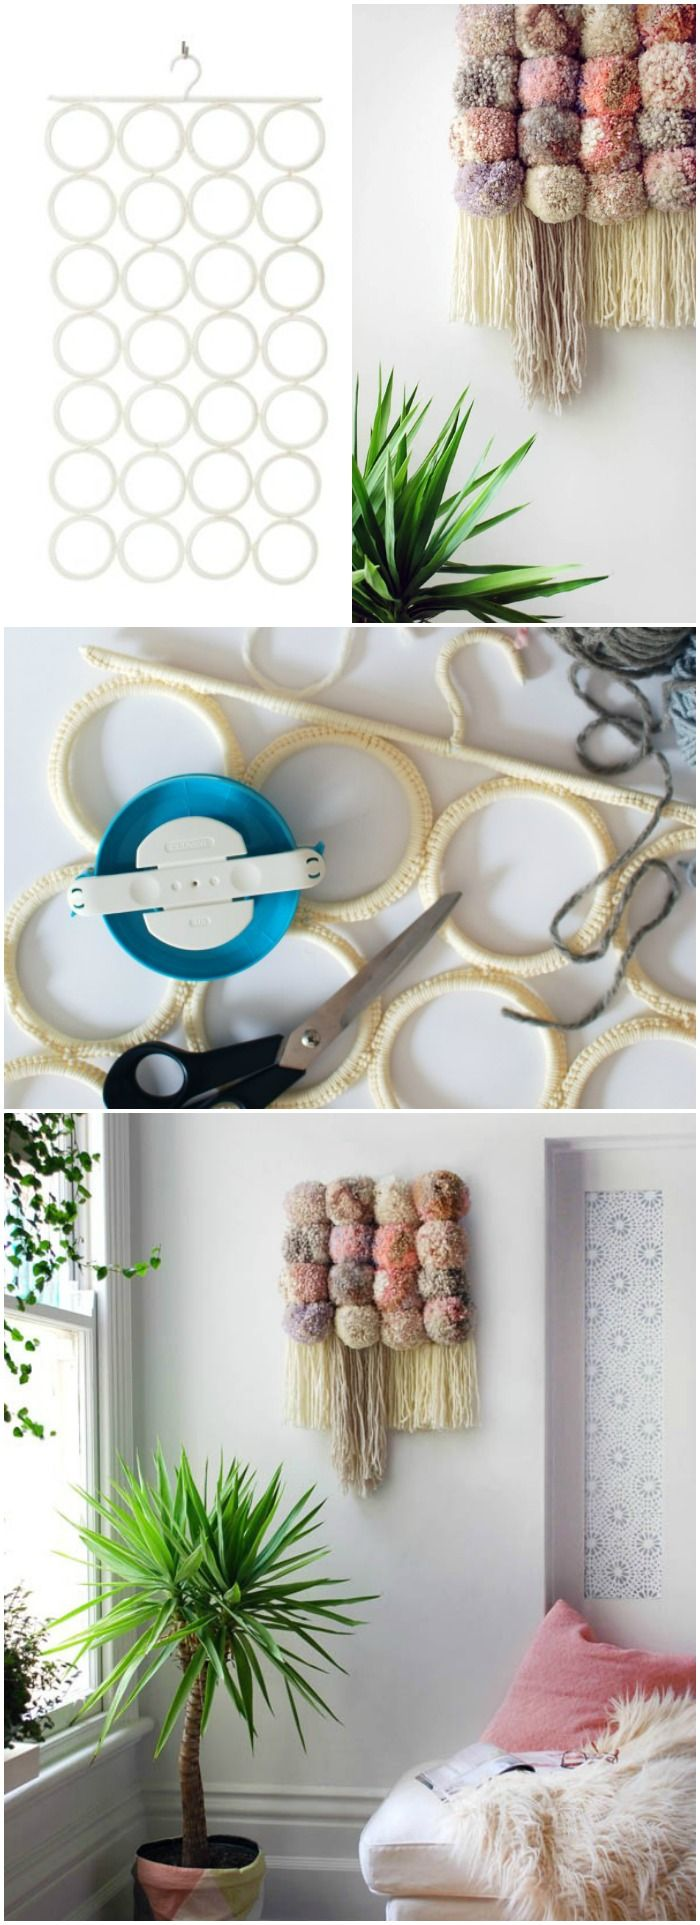 IKEA Hack + step-by-step tutorial: How to transform IKEA's KOMPLEMENT Multi-use hanger into an incredible pom-pom wall hanging. #tutorial #pompom #wallhanging #ikeahack